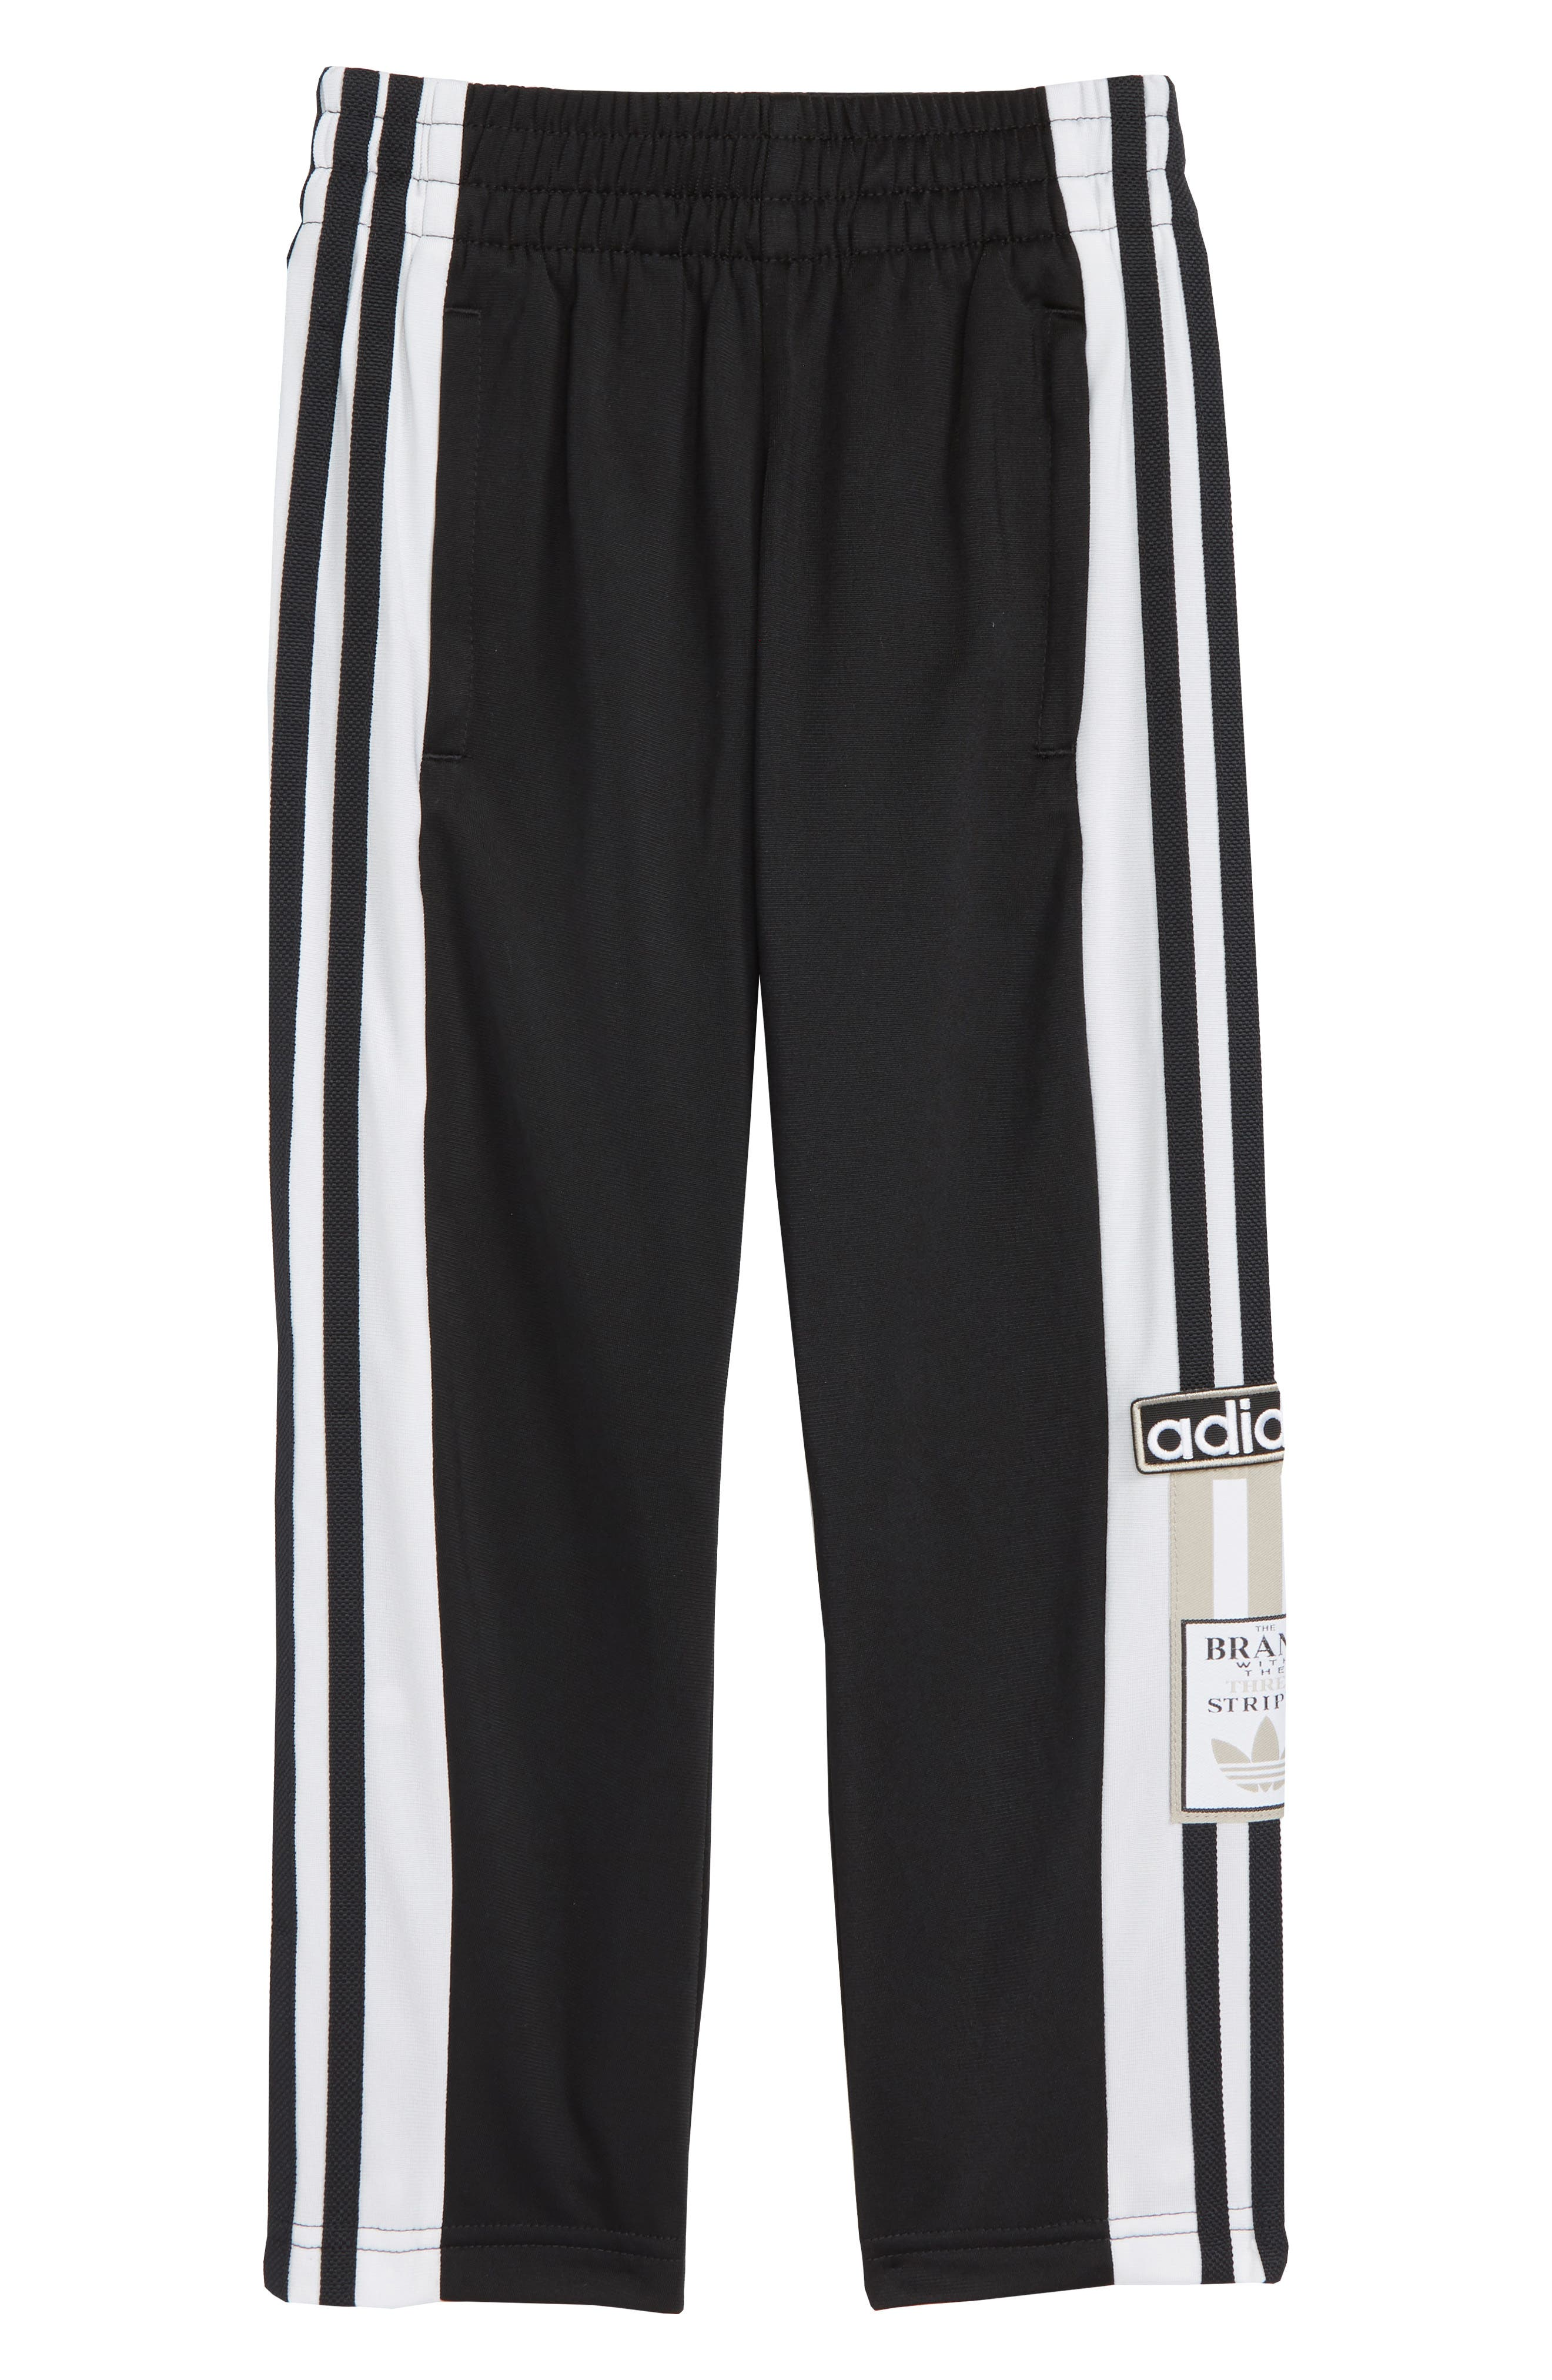 Adibreak Sweatpants,                         Main,                         color, BLACK/ WHITE